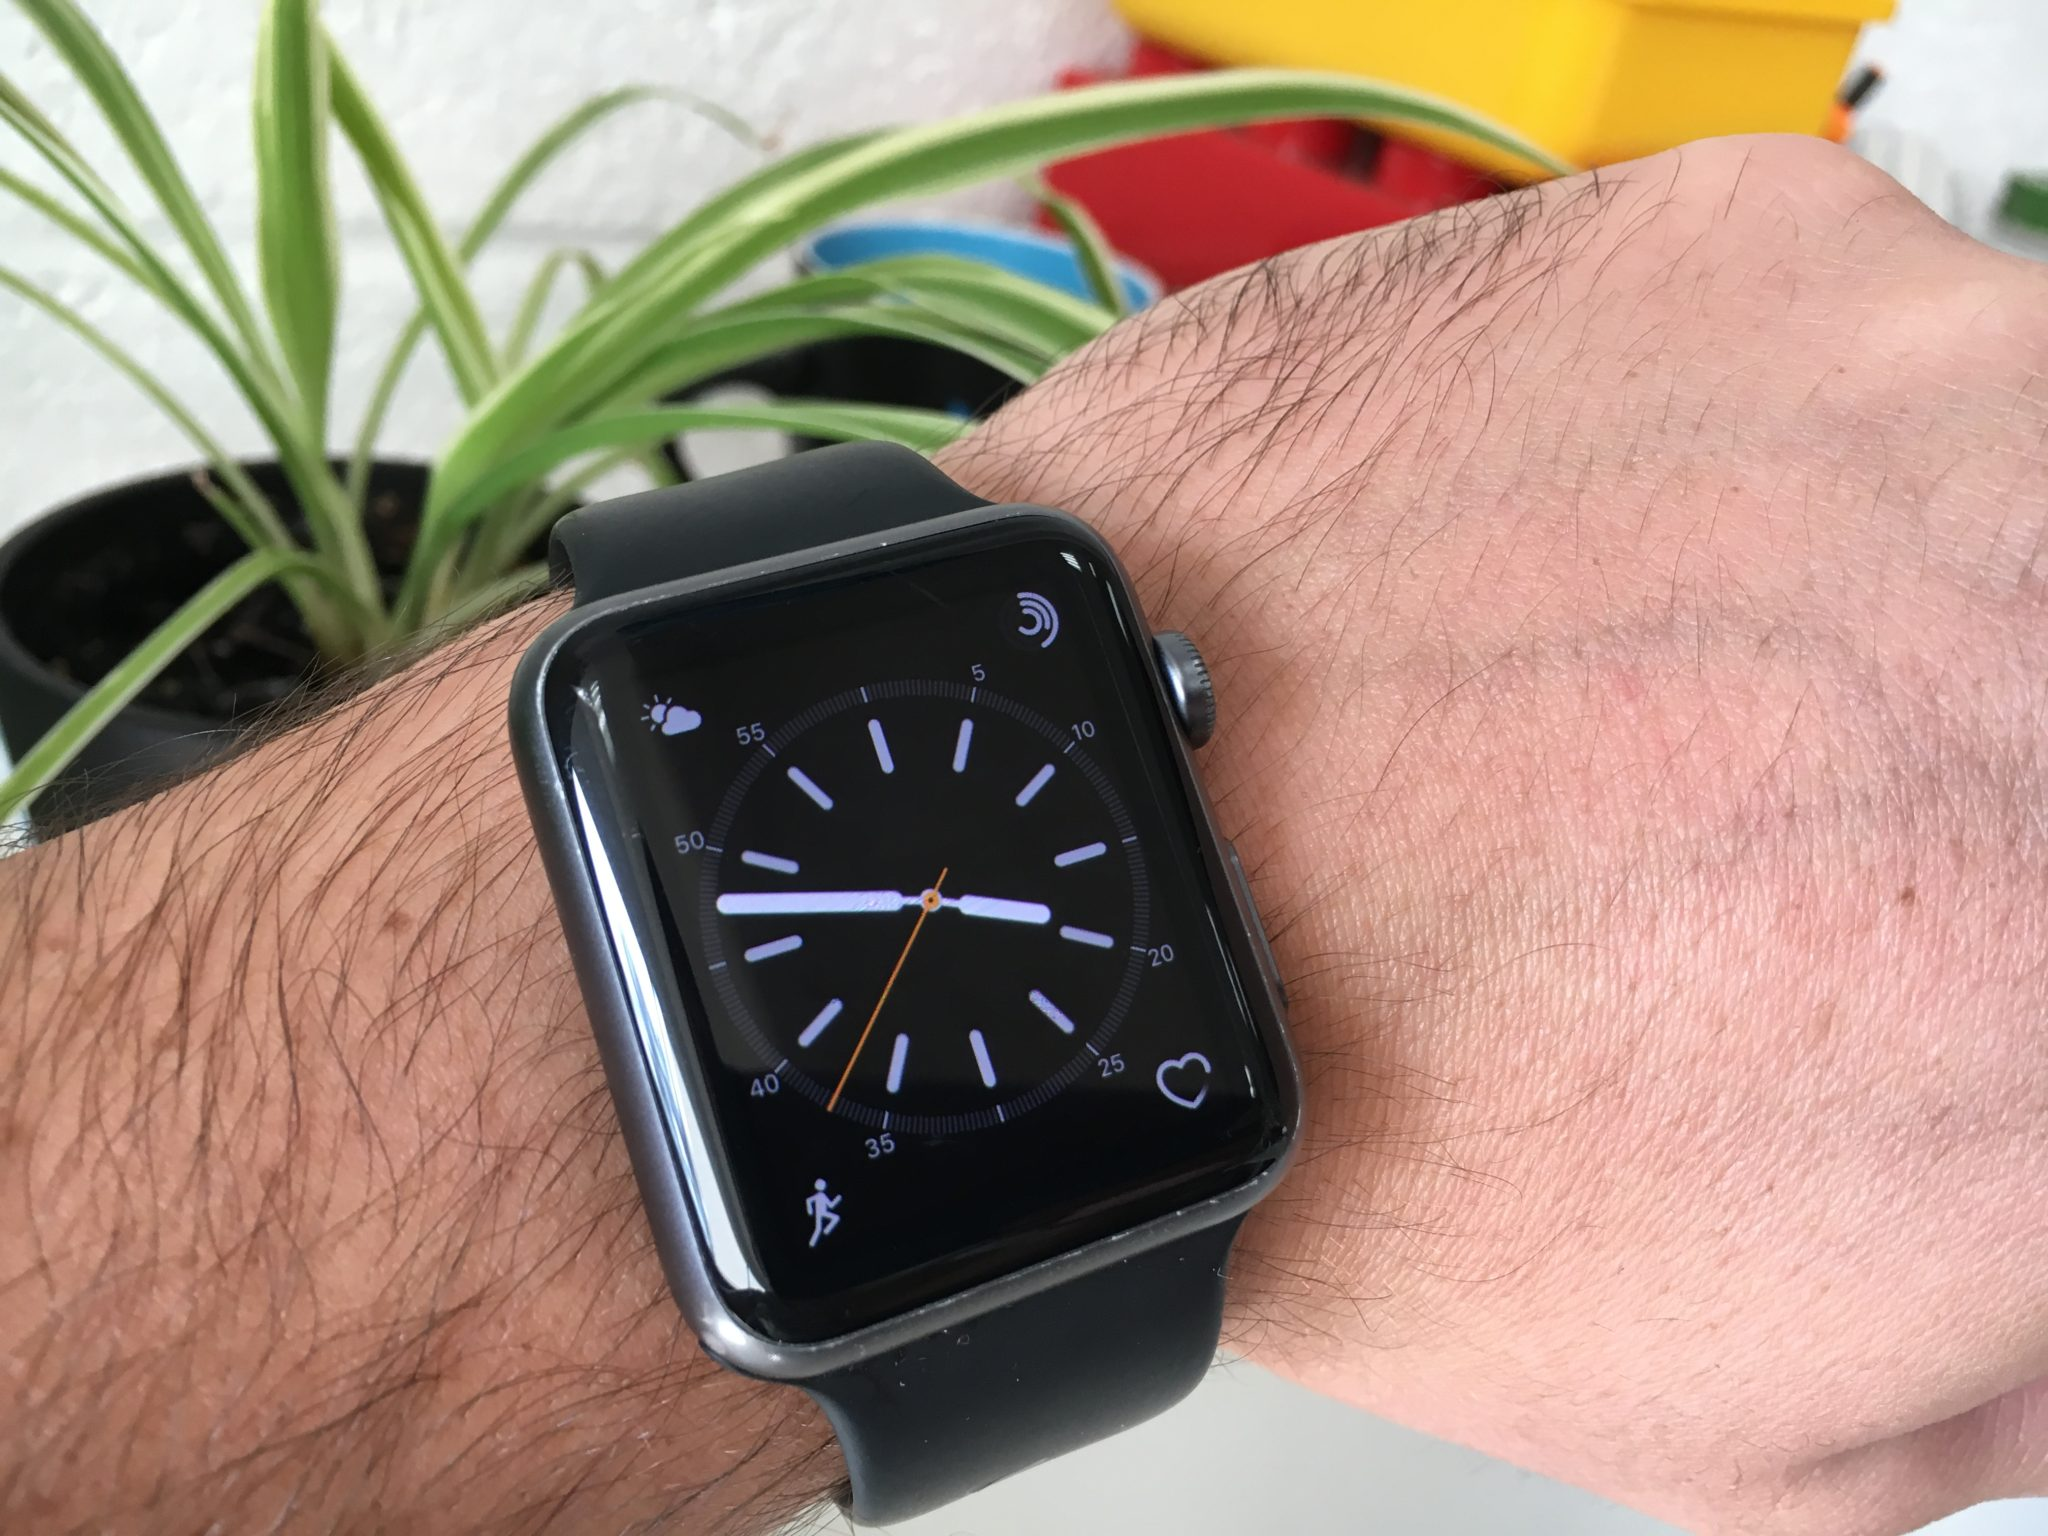 a-quoi-sert-apple-watch-savinien.fr_-1040×7802